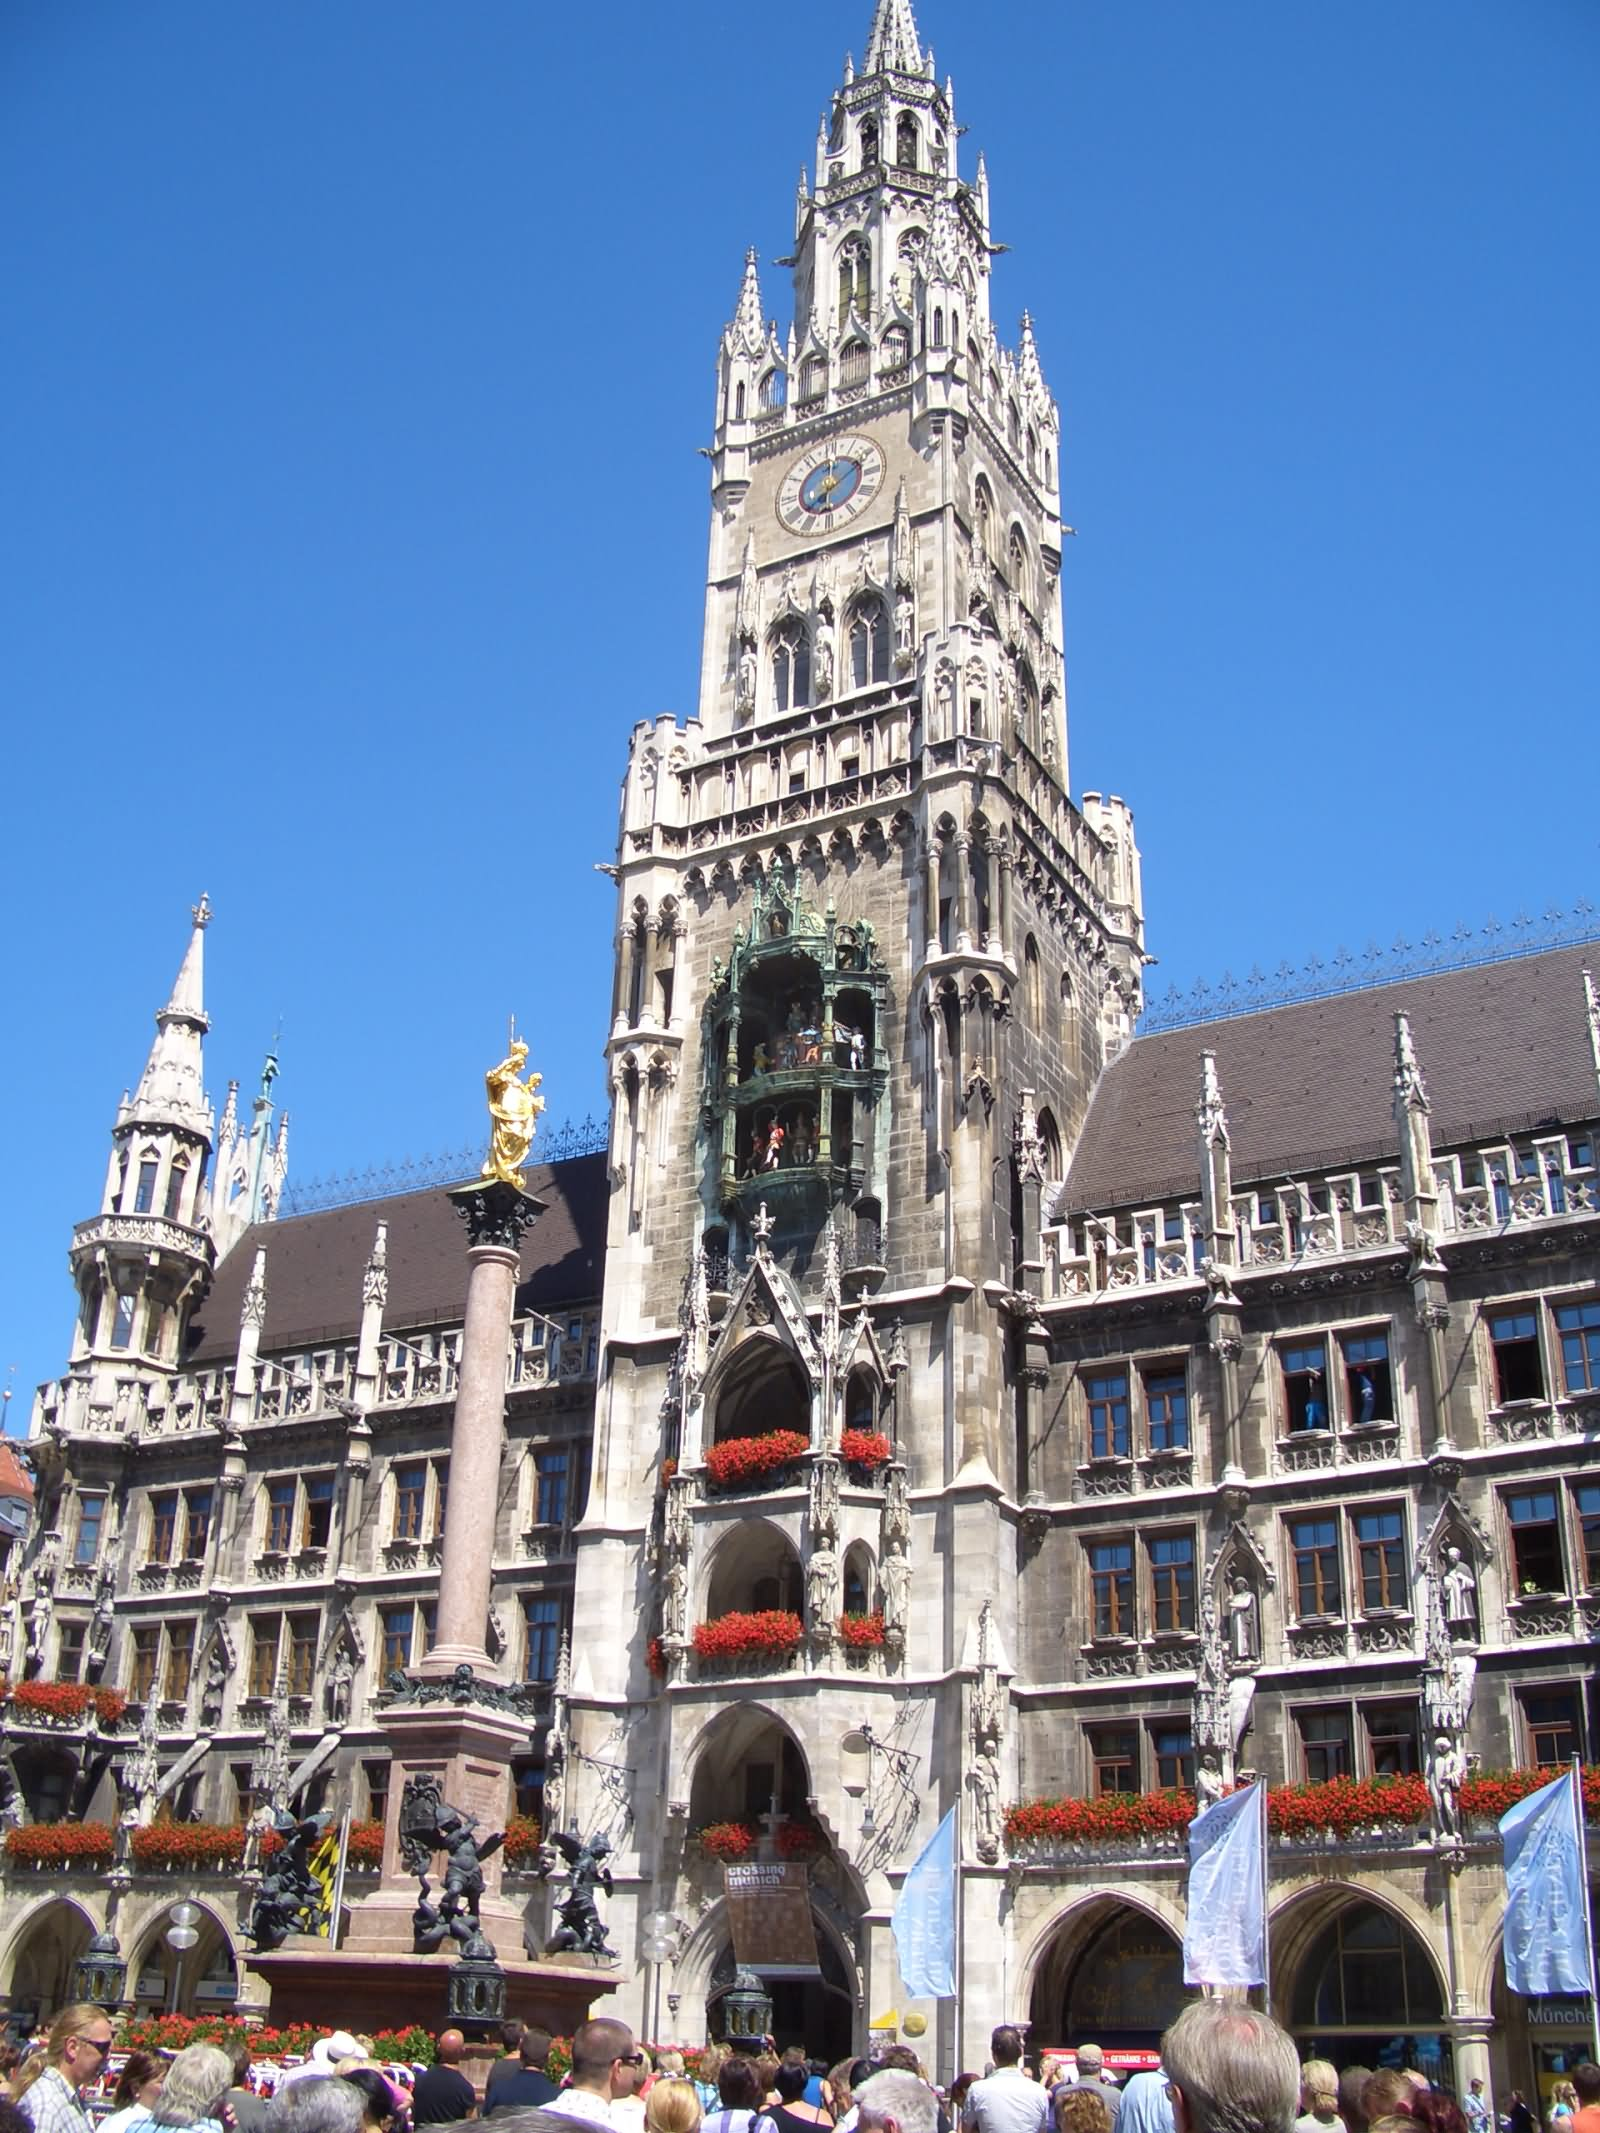 25 Incredible Night Pictures Of The Neues Rathaus In Bavaria Germany